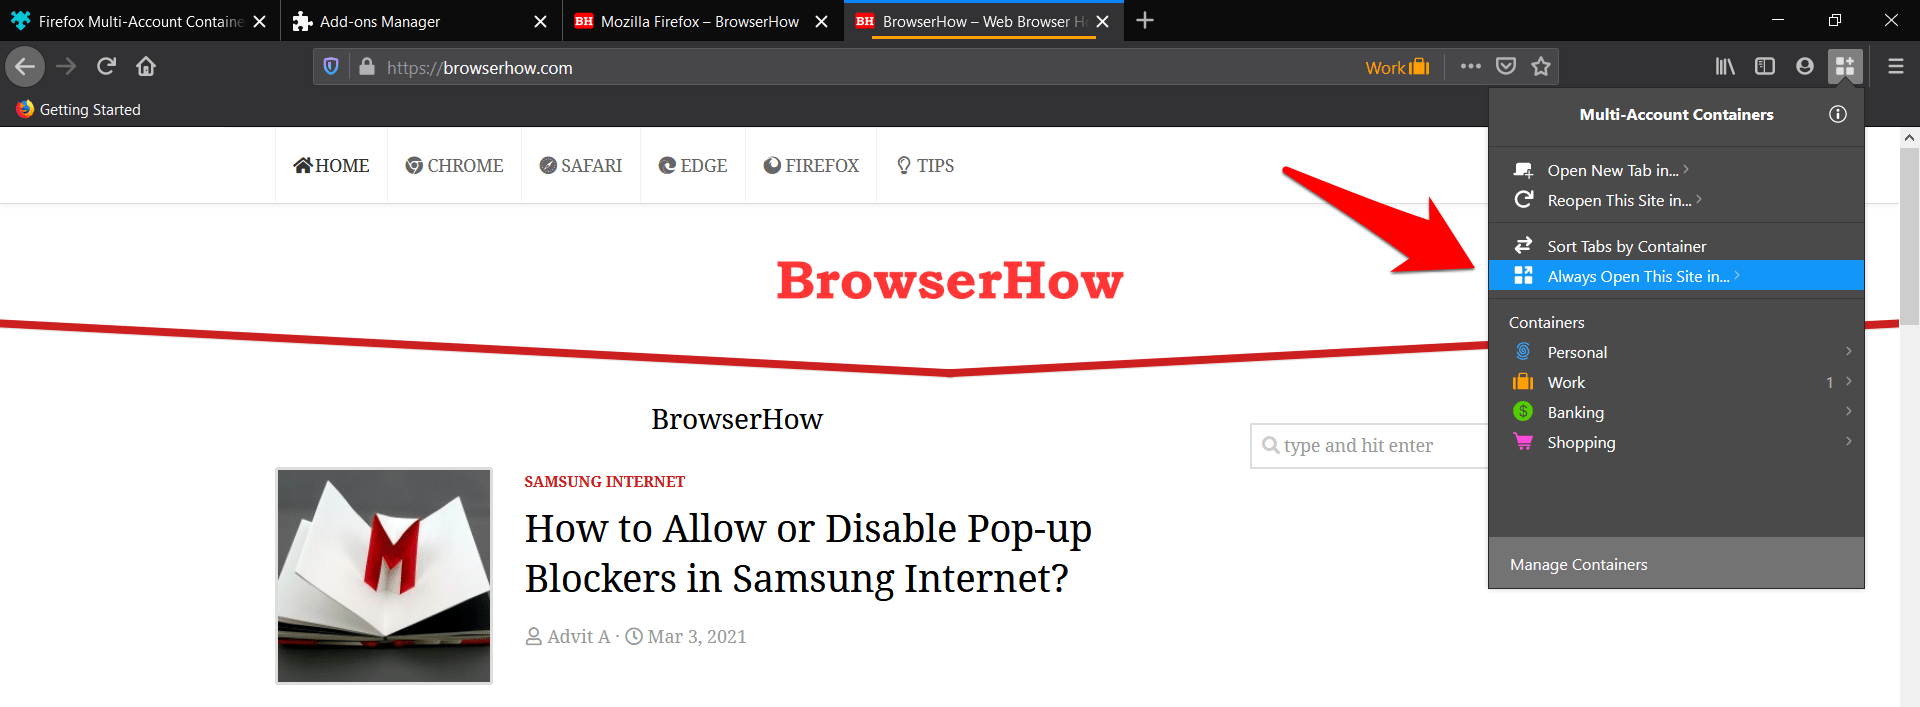 Always Open This site in Firefox containers